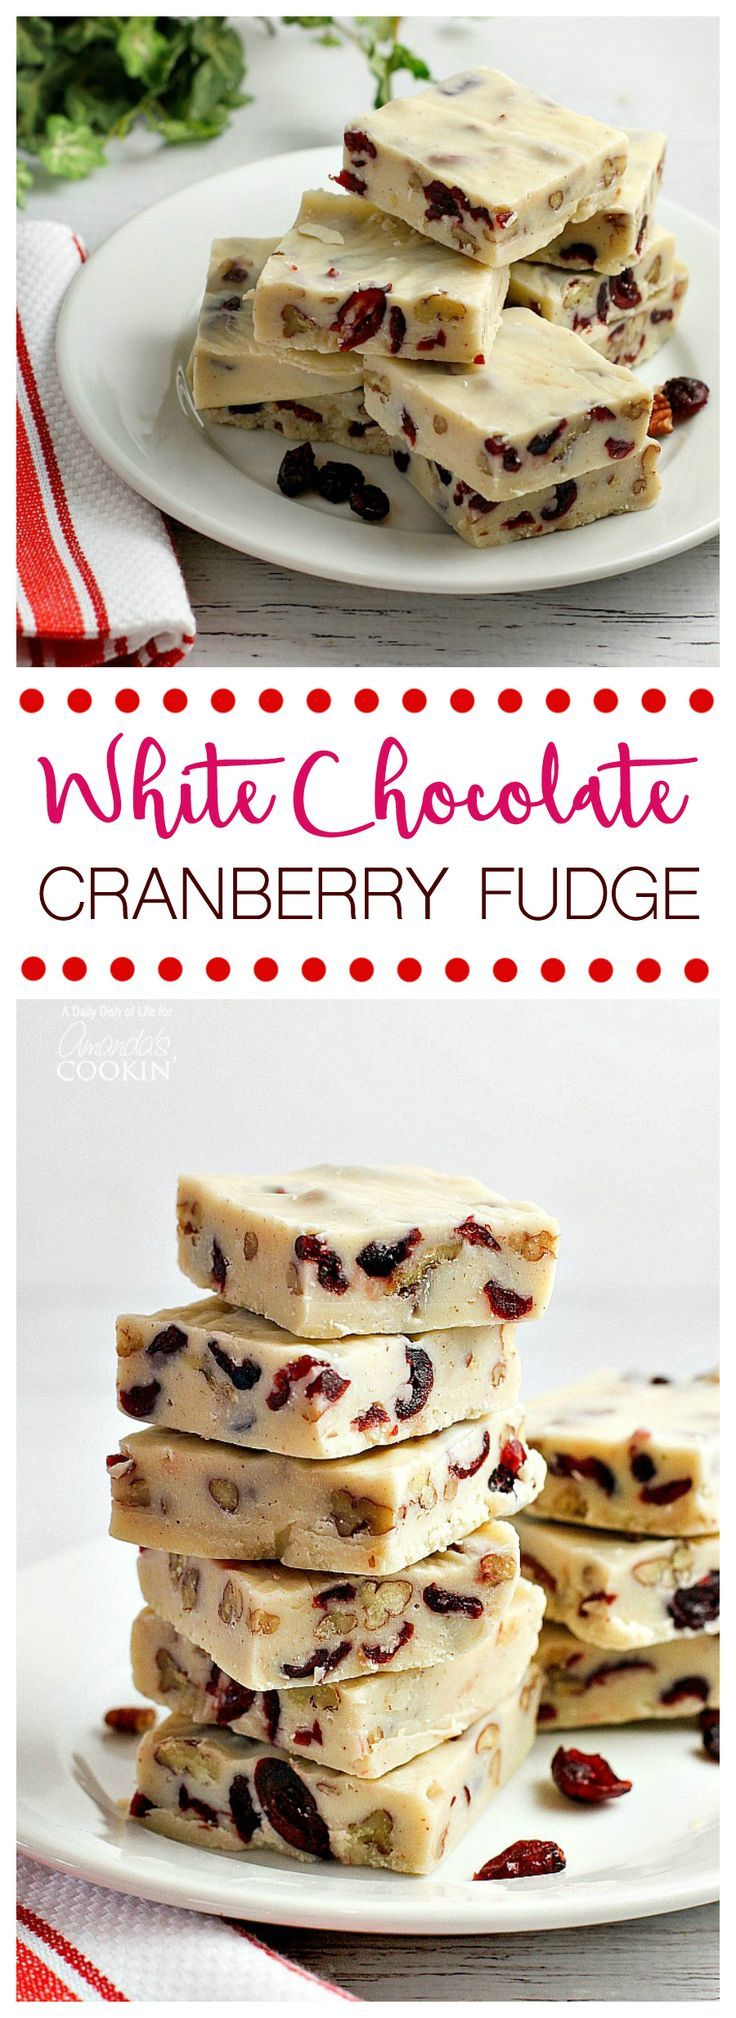 Recipe for white chocolate cranberry fudge - perfect for Christmas gifts or to serve after your holiday dinner!